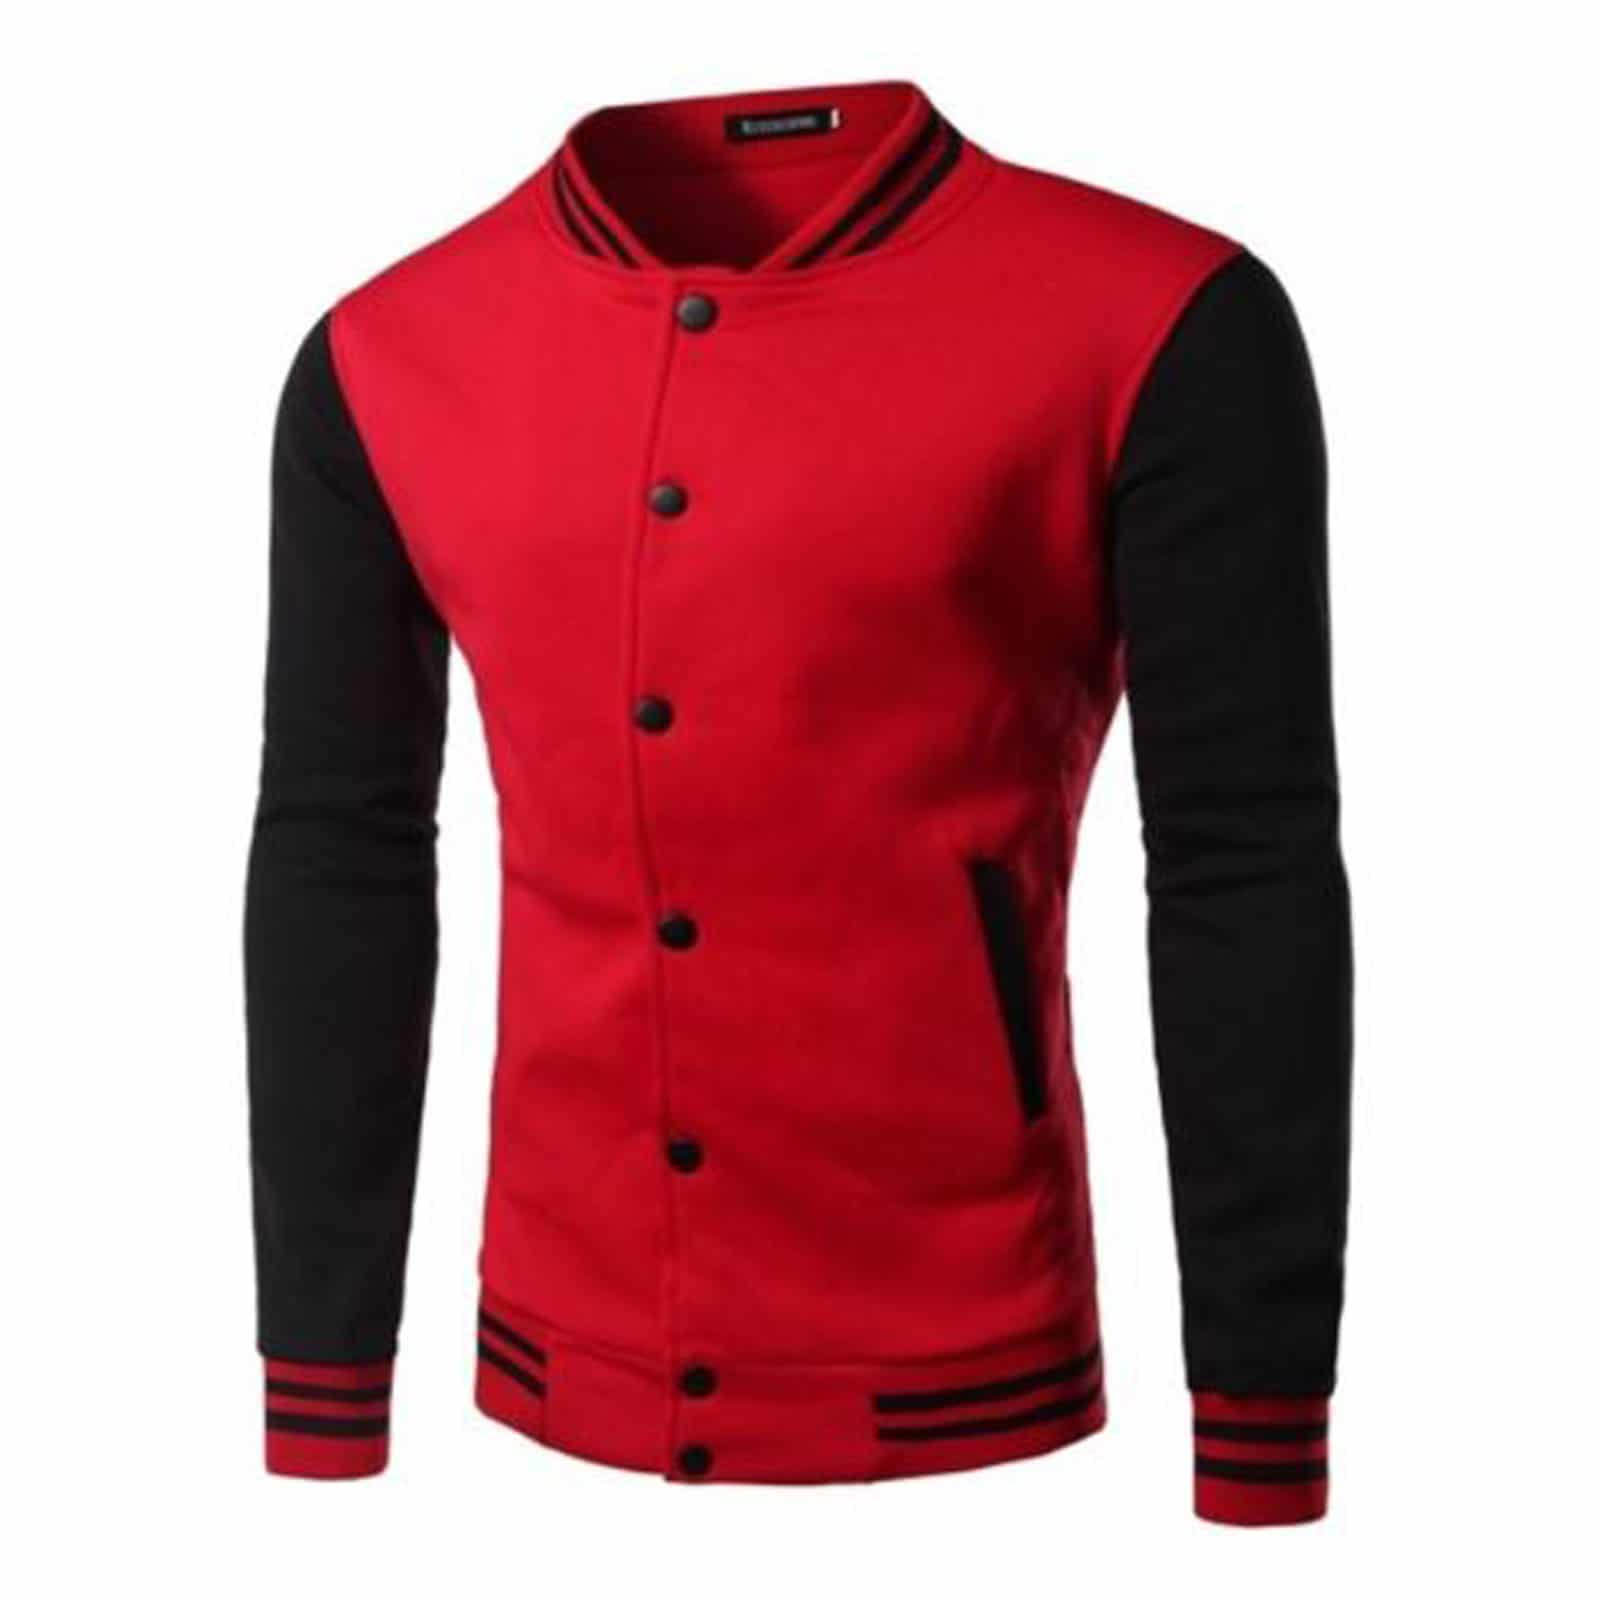 Red Black Letterman Varsity Jacket Made To Measure Kilt And Jacks